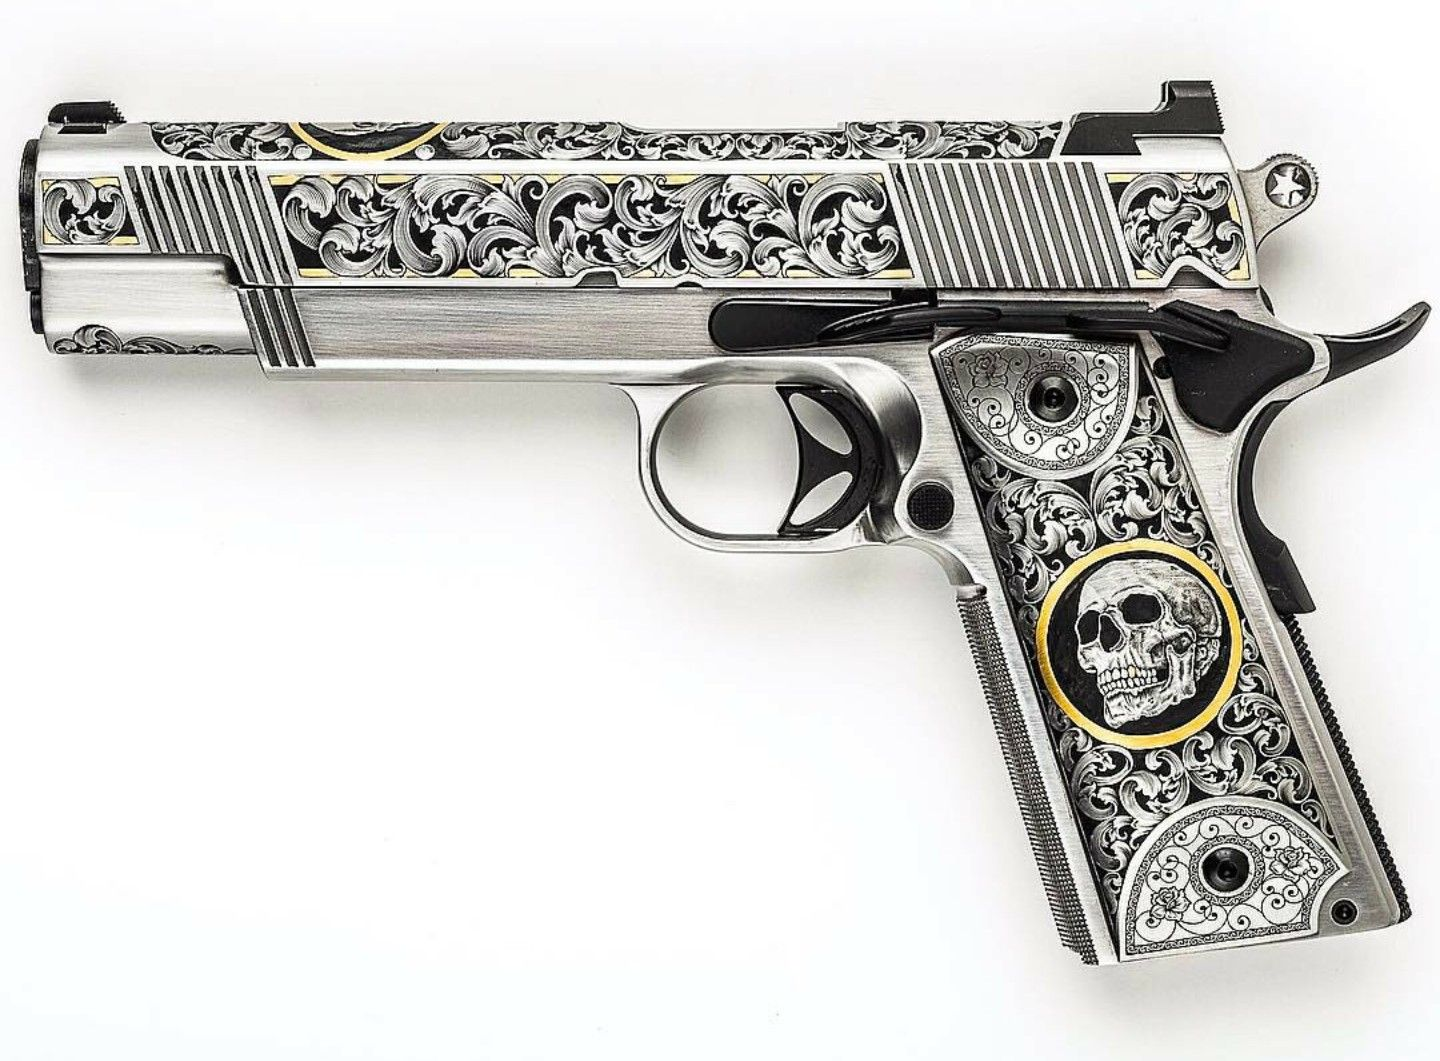 Jesse James Firearms Skulls Cisco 1911 Especial Guns Guns Handgun Pretty Guns